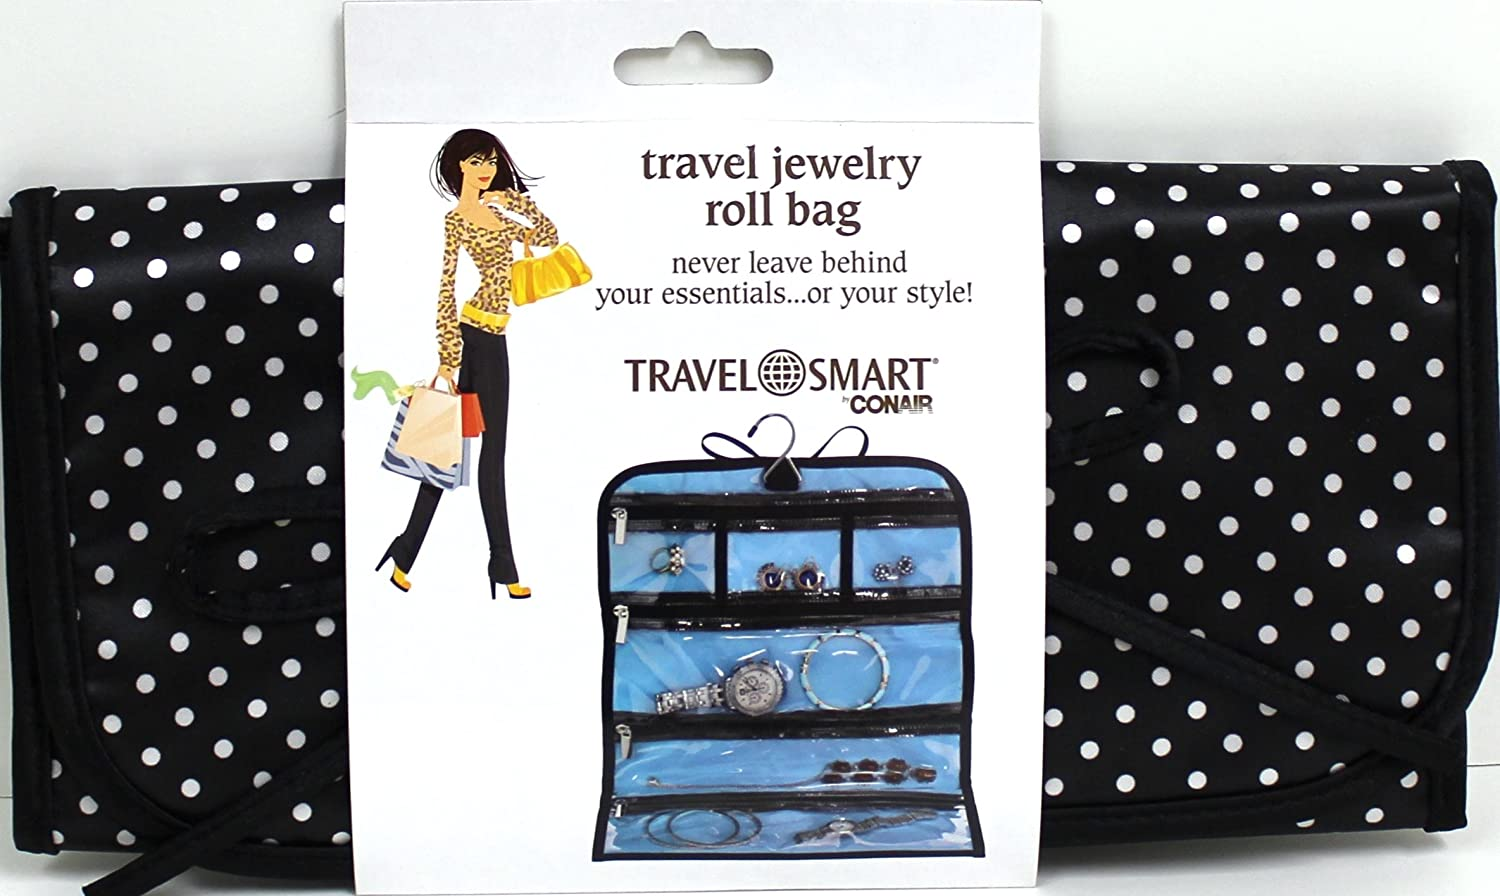 Amazoncom Travel Smart by Conair Jewelry Roll Bag Health